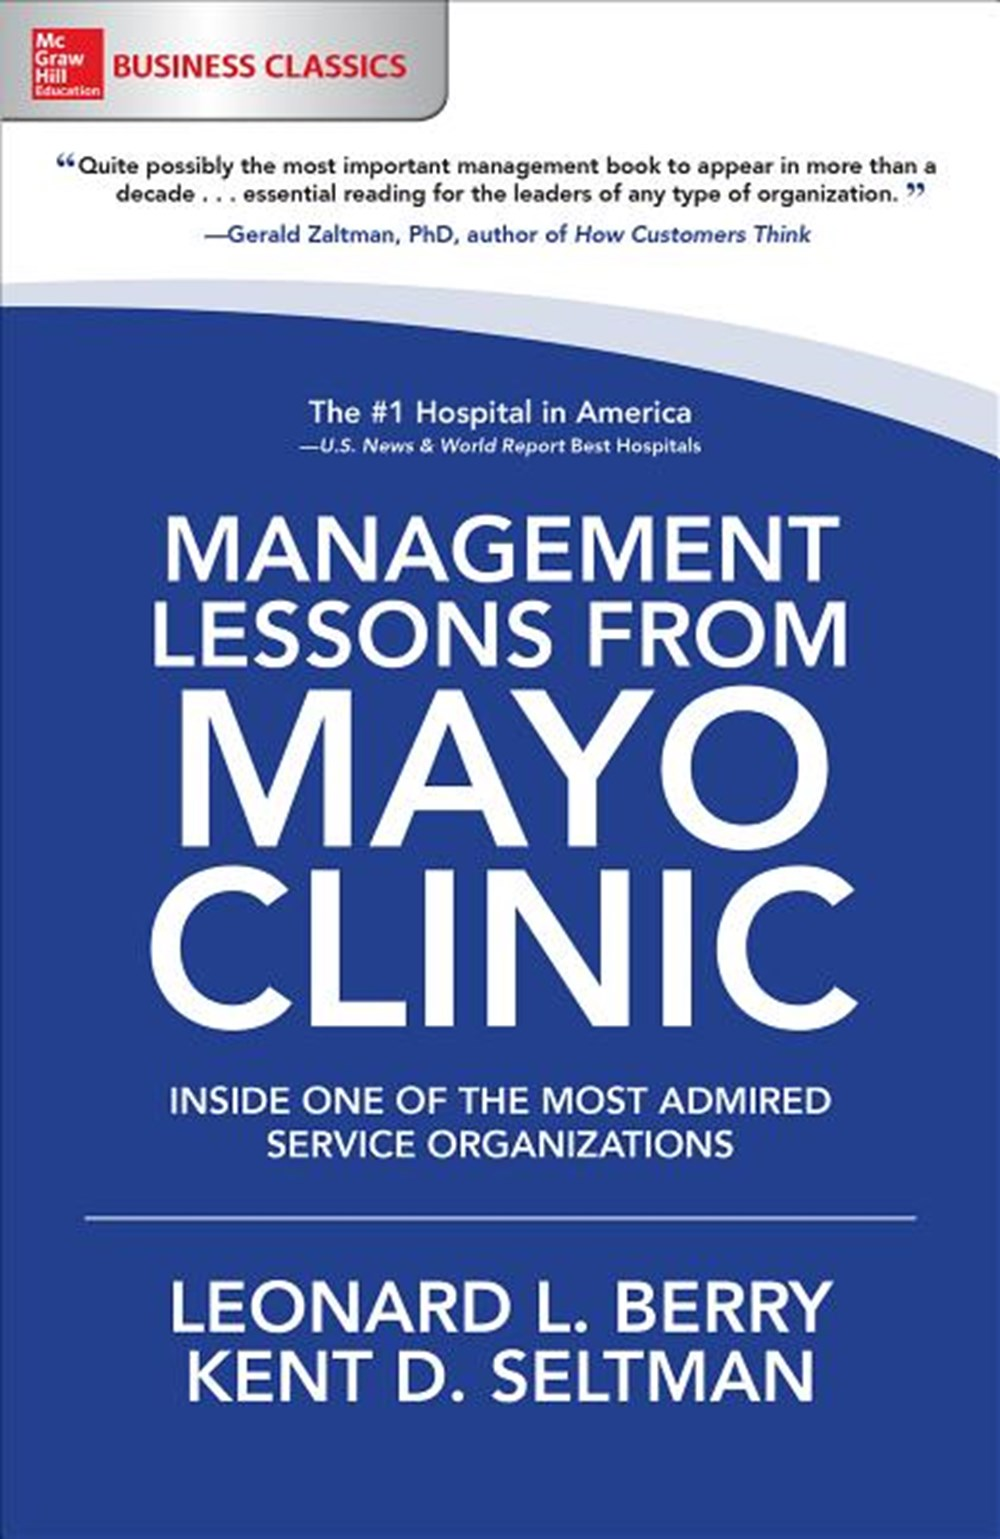 Management Lessons from Mayo Clinic Inside One of the World's Most Admired Service Organizations